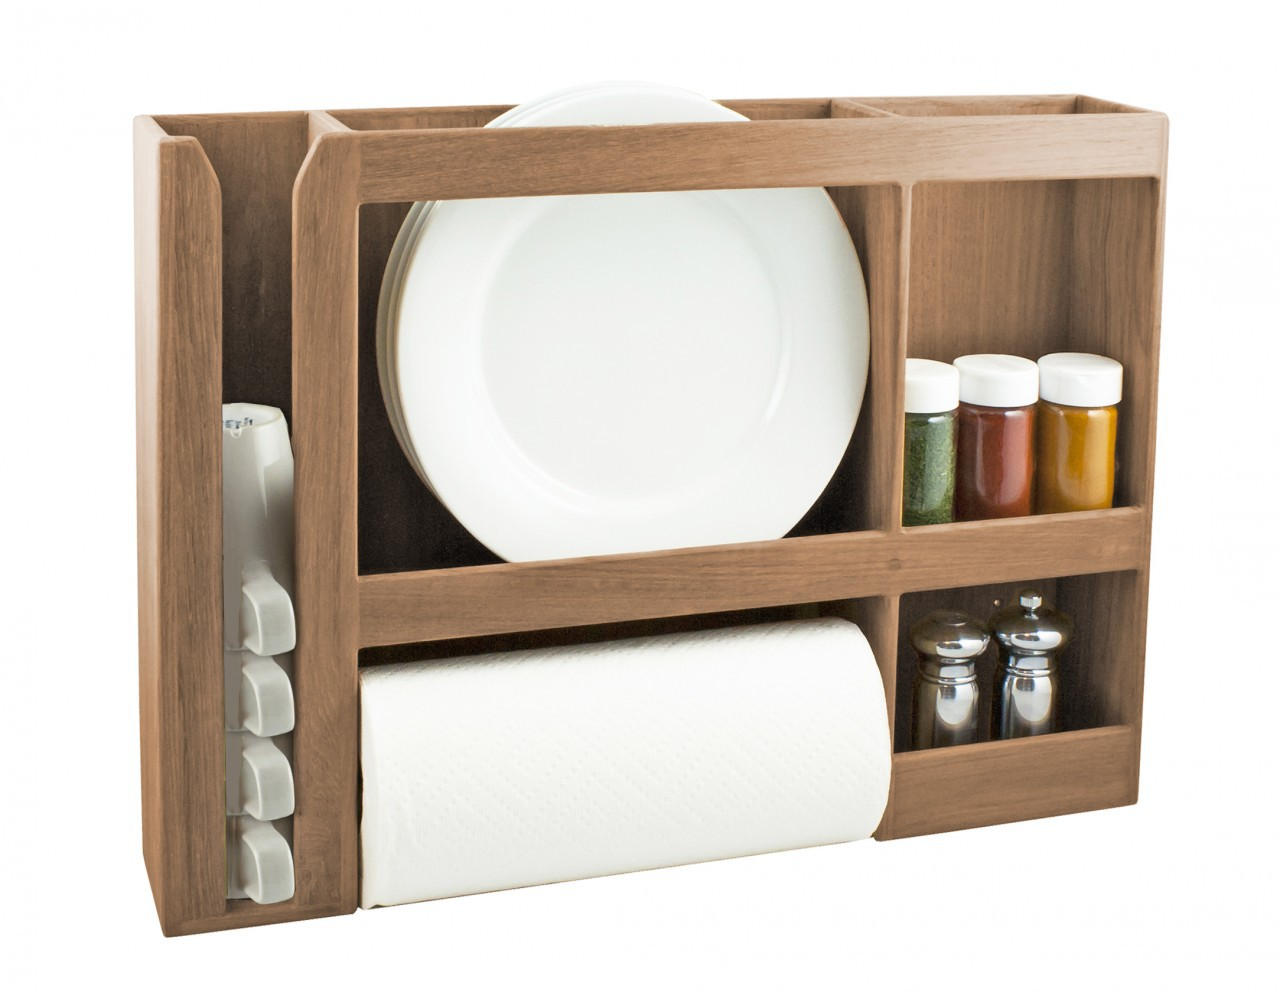 storage ideas and space saving inspiration from sailors a seateak dish cup spice towel rack is storing plates a paper